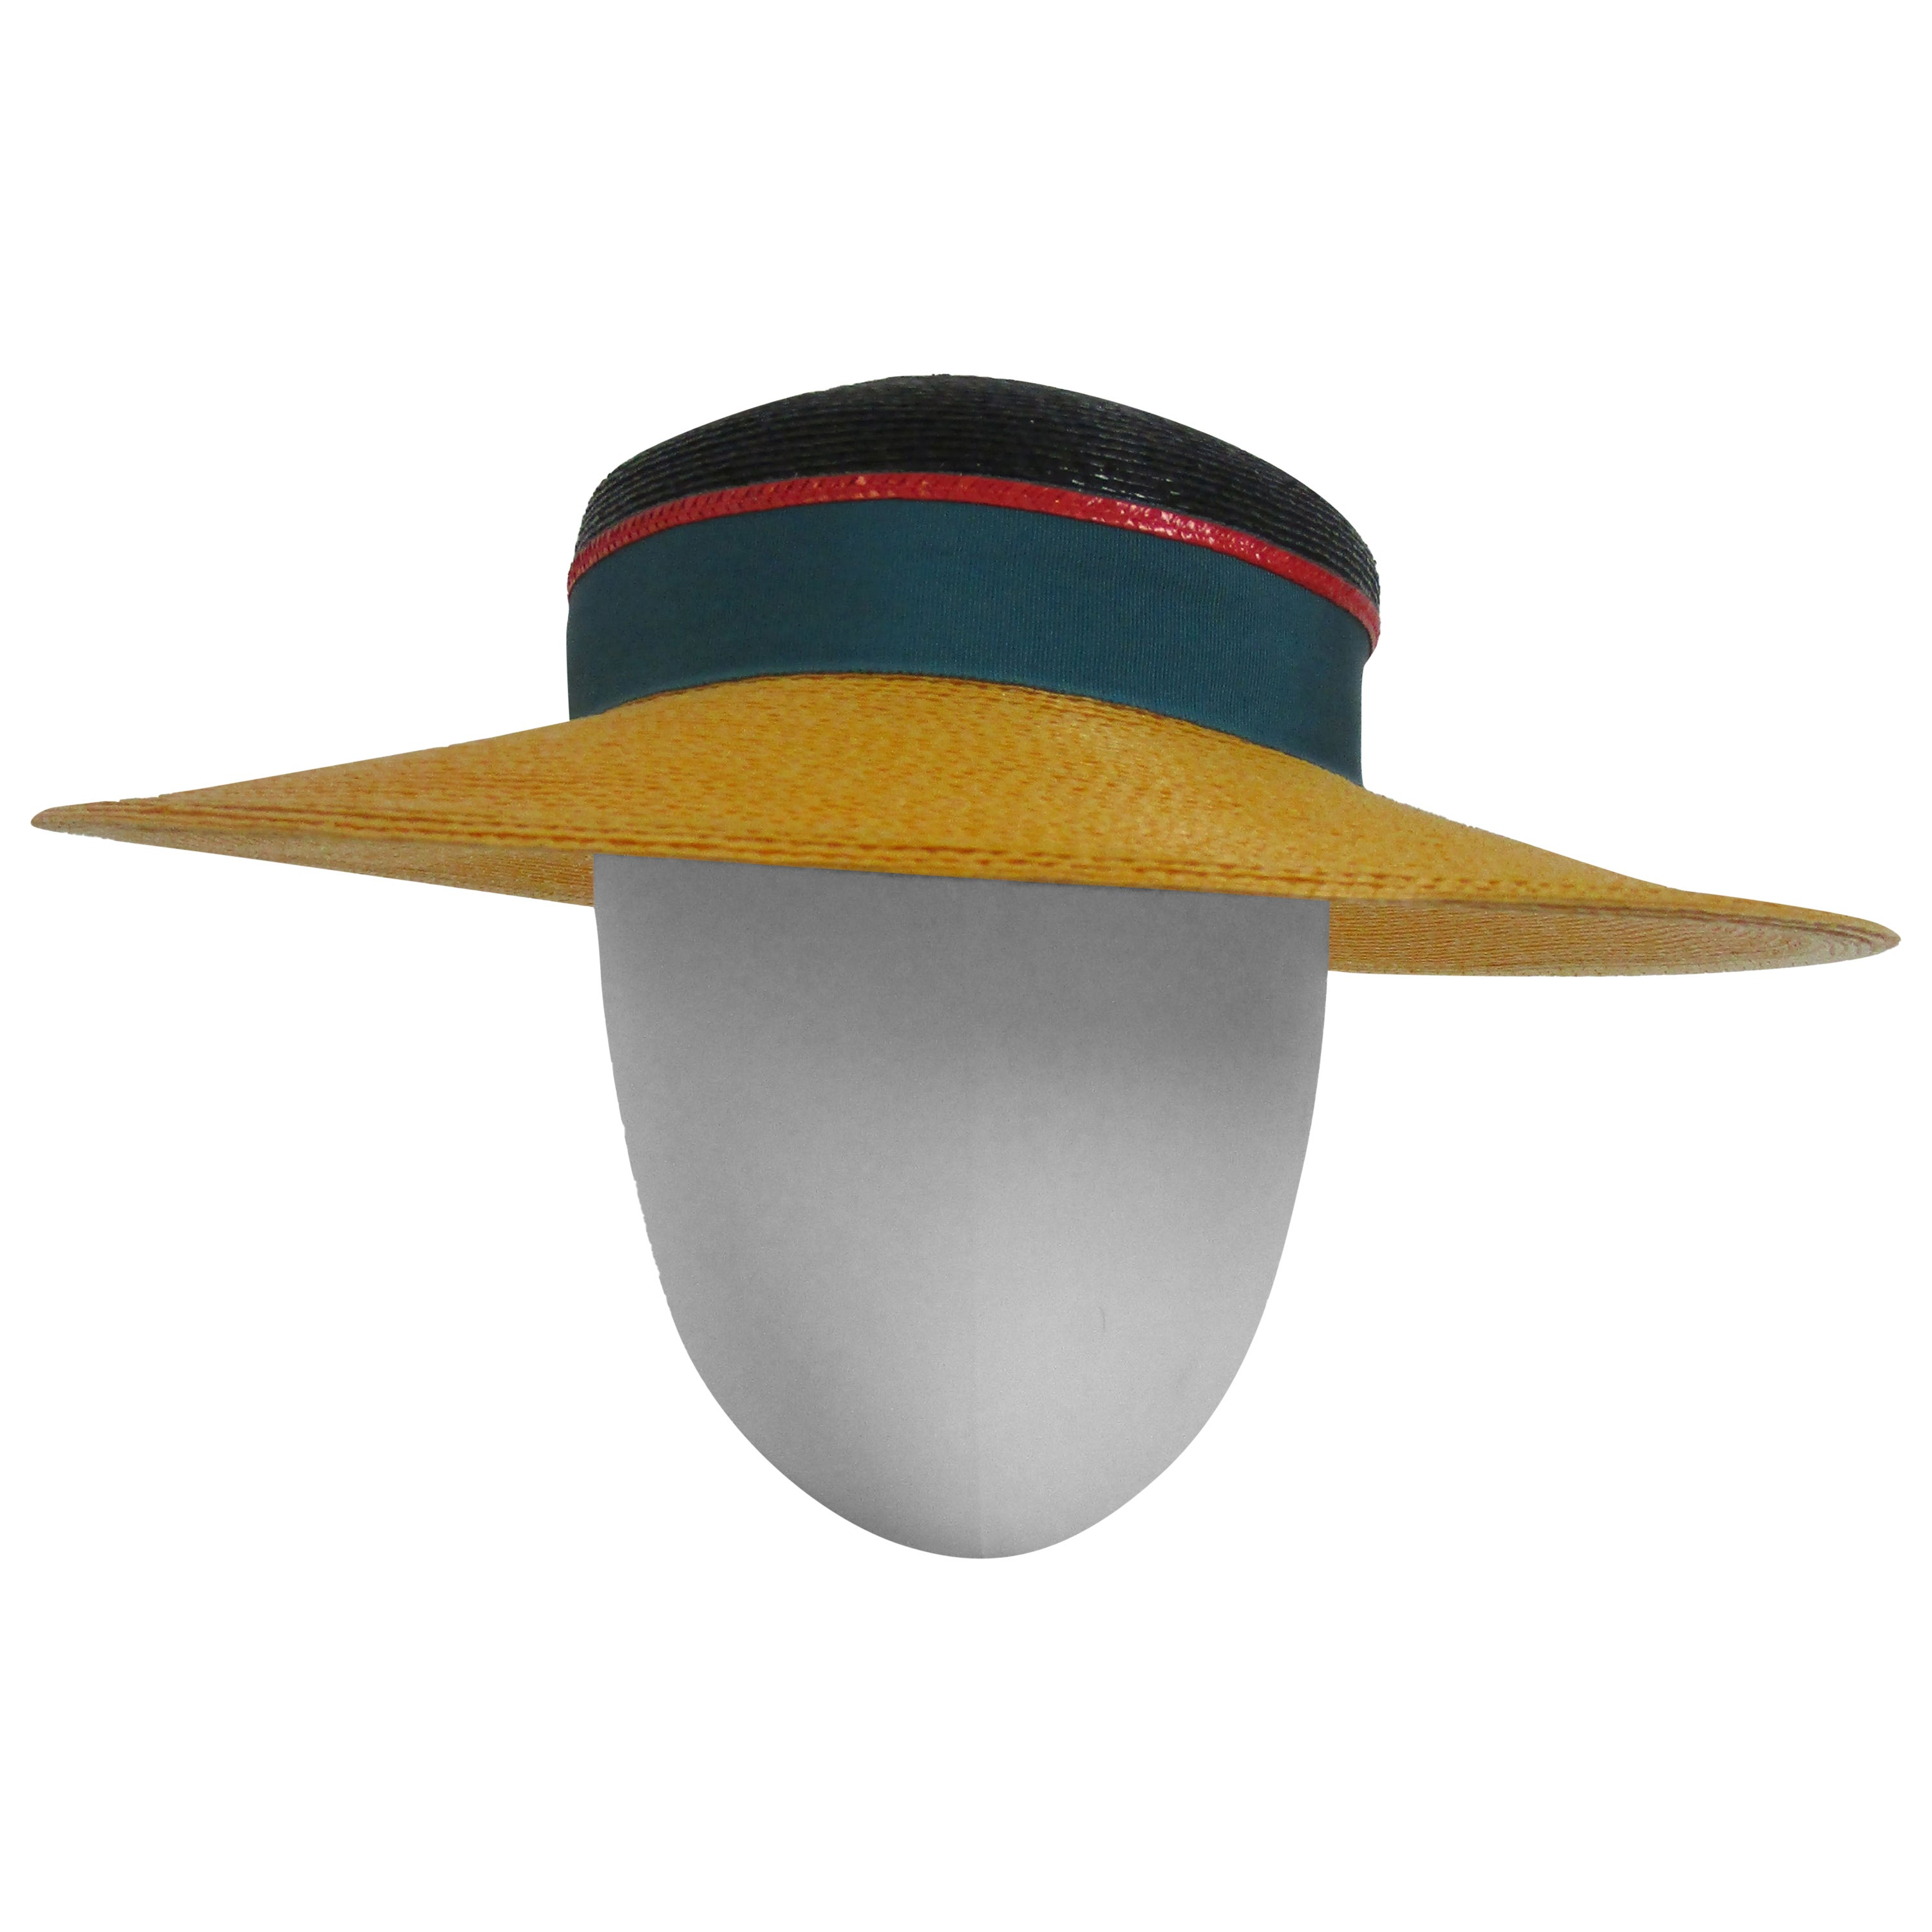 1980s Frank Olive Color Block Straw Hat with Bow